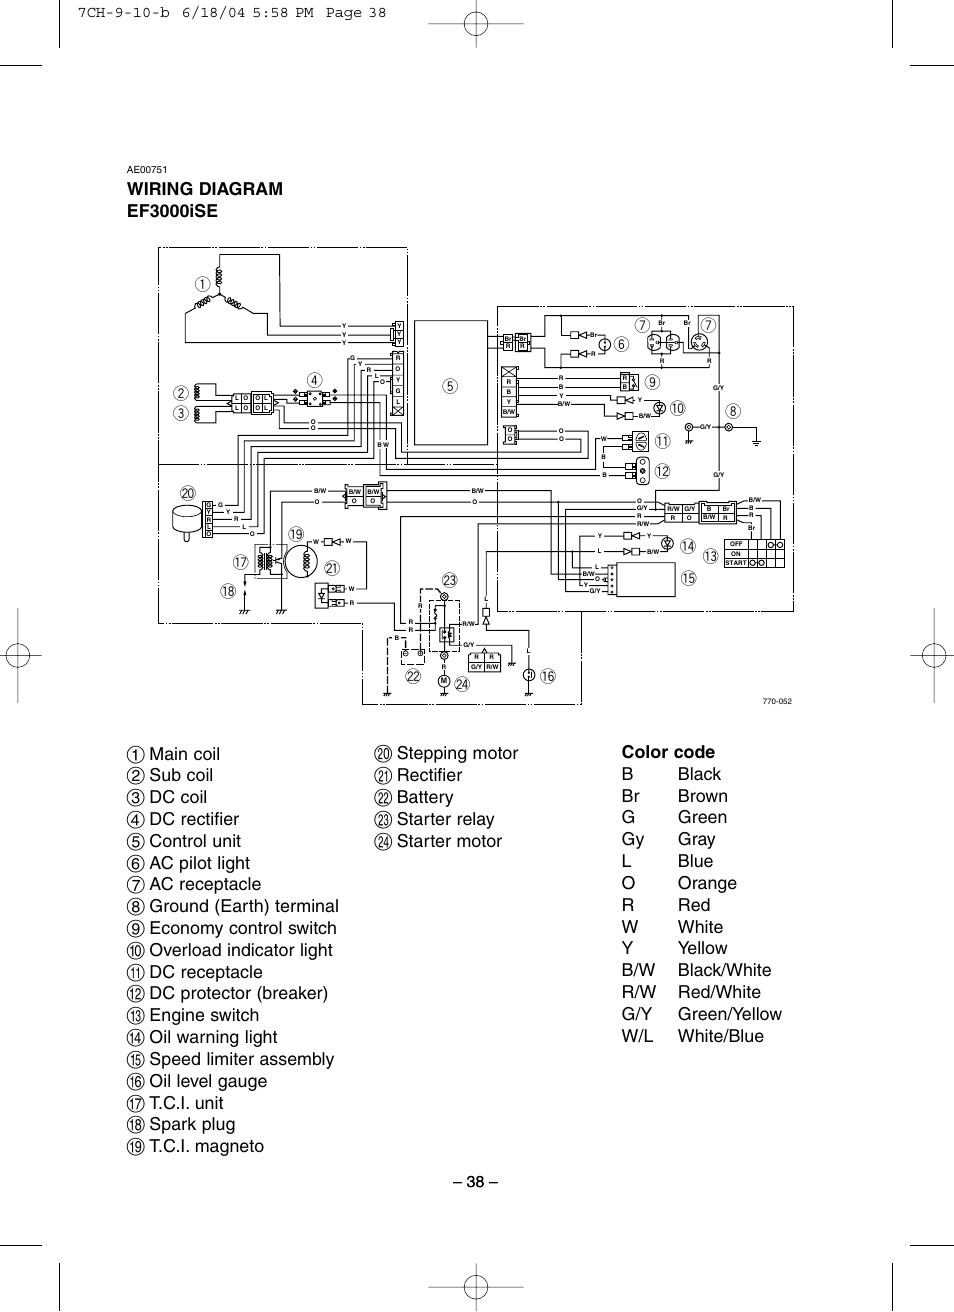 Yamaha Ef3000iseb Wiring Diagram Reinvent Your Raptor 660 Spark Ef3000ise User Manual Page 43 47 Rh Manualsdir Com